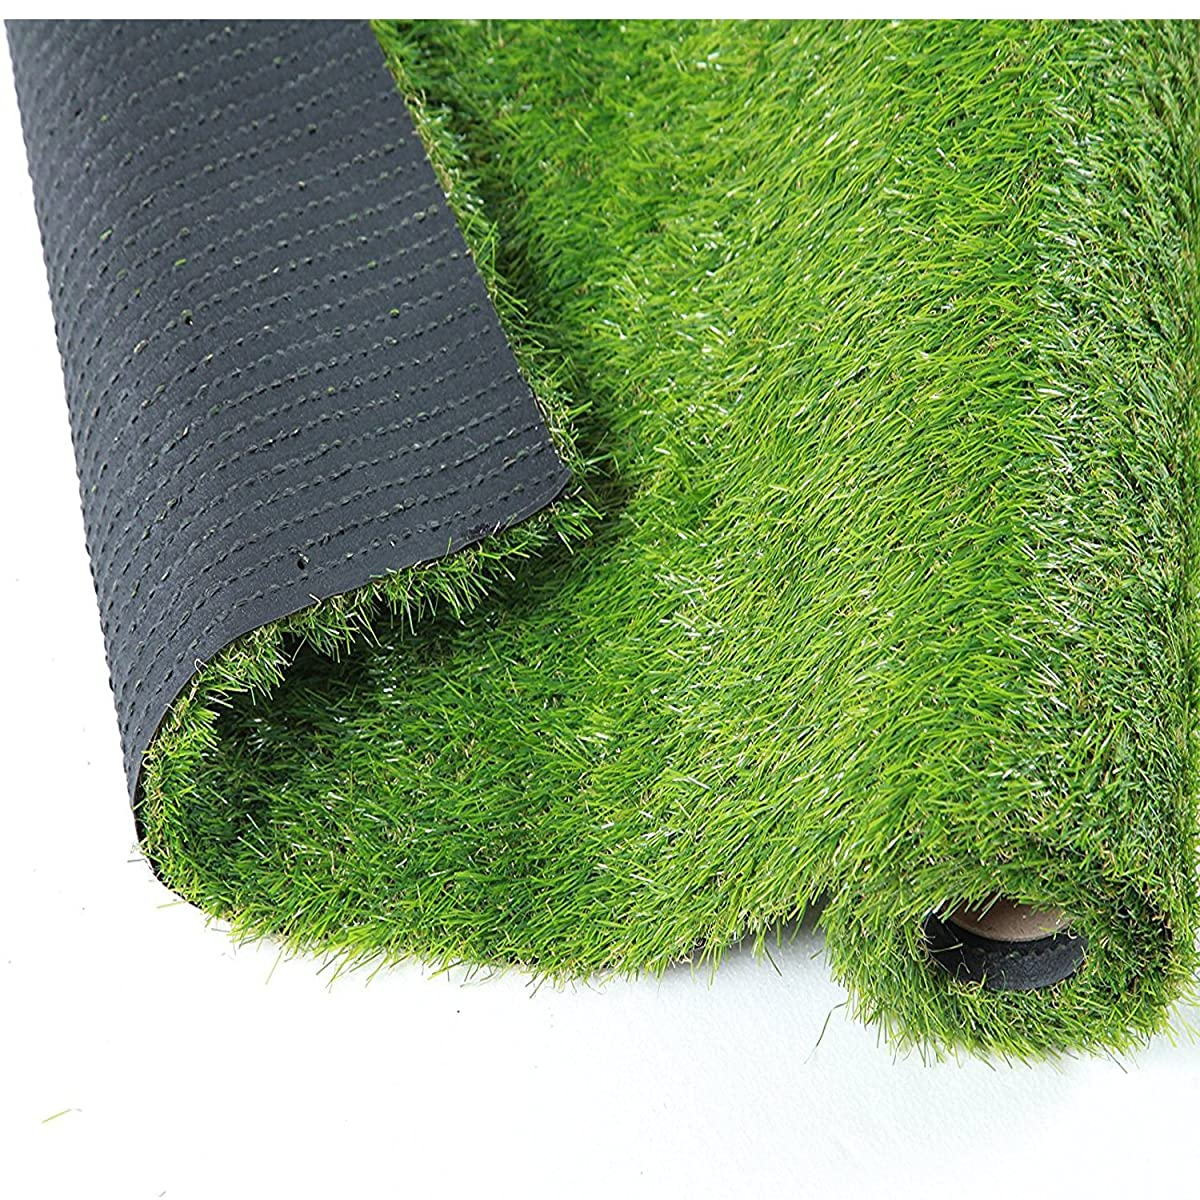 Patio Grass Rug: QYH Artificial Grass Rug Fake Grass Turf Indoor/Outdoor